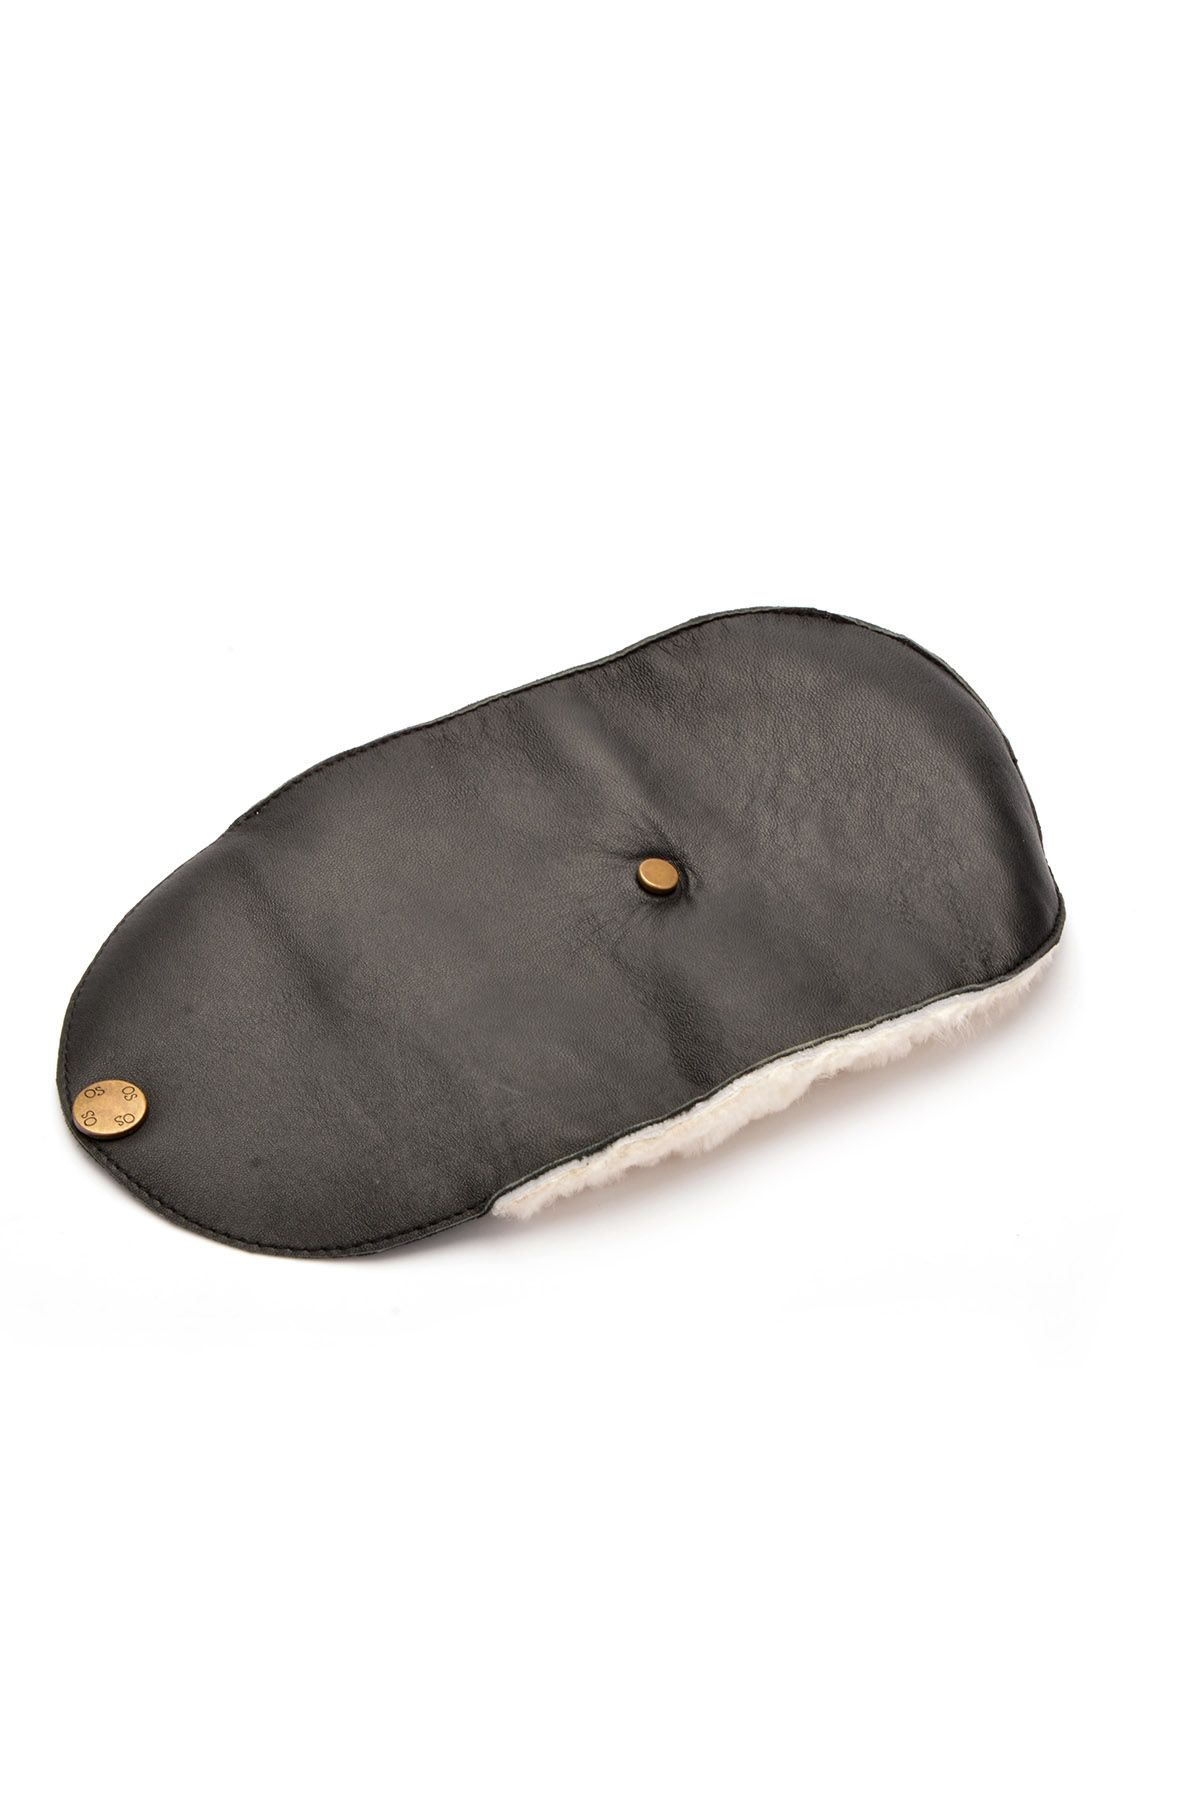 Pegia Leather Accessory For Shoe Polishing Black